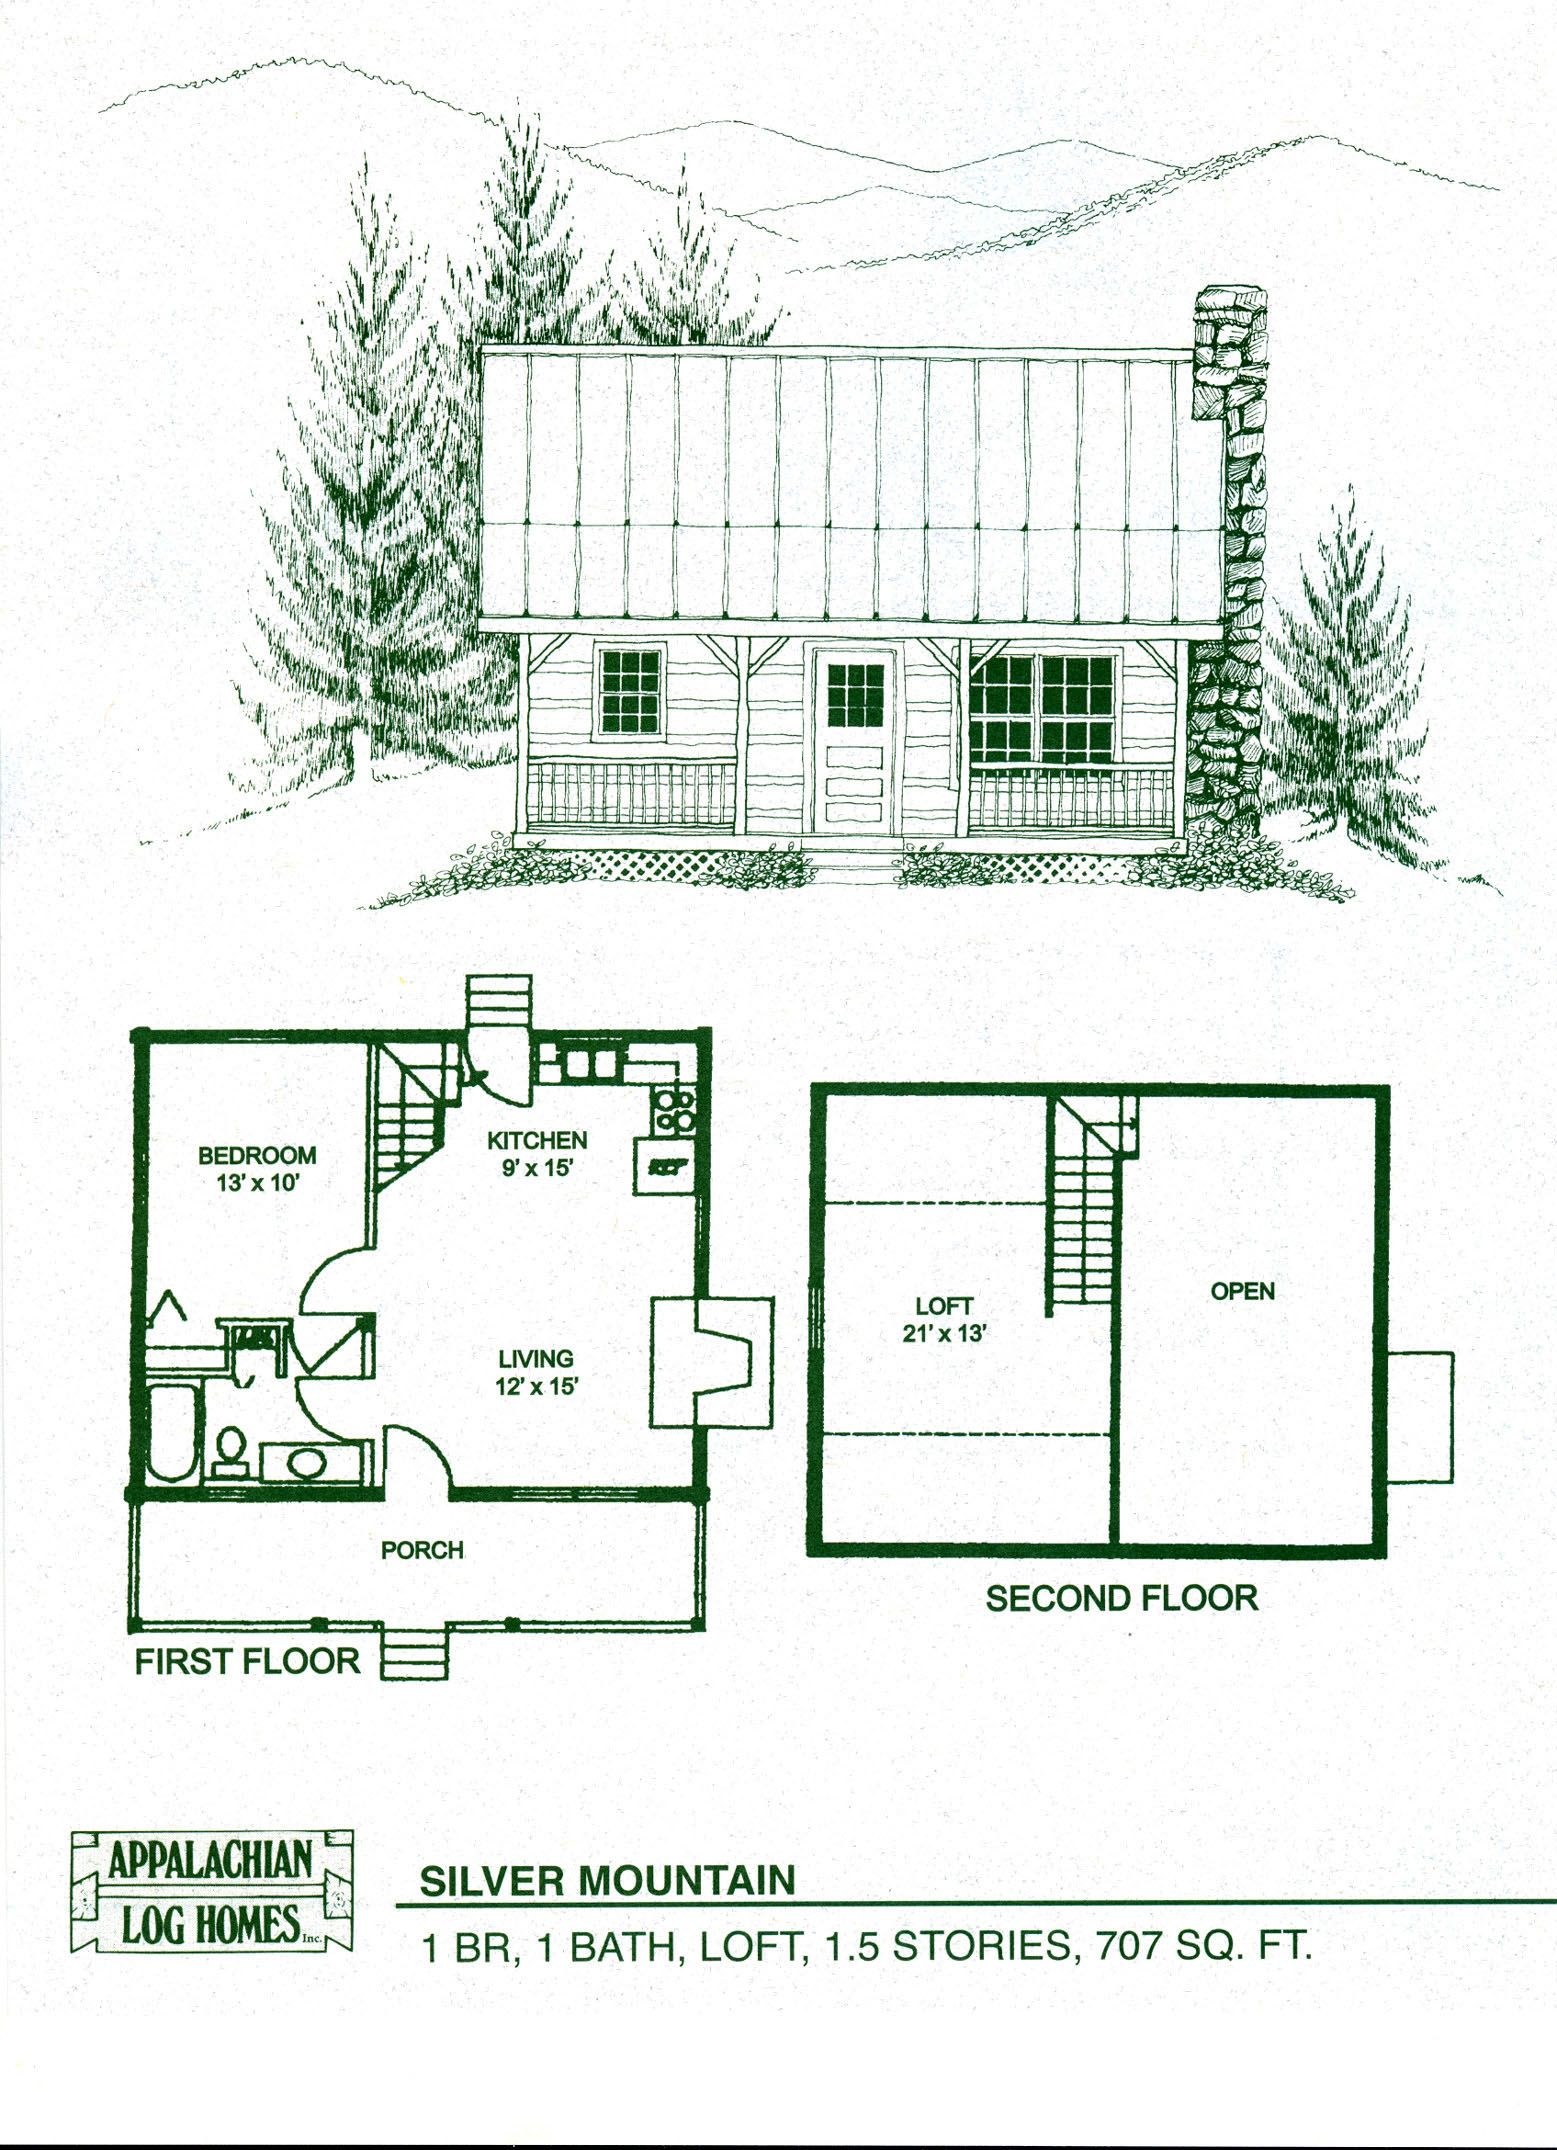 Beau [Cabin Plans Small House Floor Log Simple With Loft Lrg] Simple Small House  Floor Plans With Loft Lrg Cabin Simple Cabin Floor Plans Small House Lrg  With ...